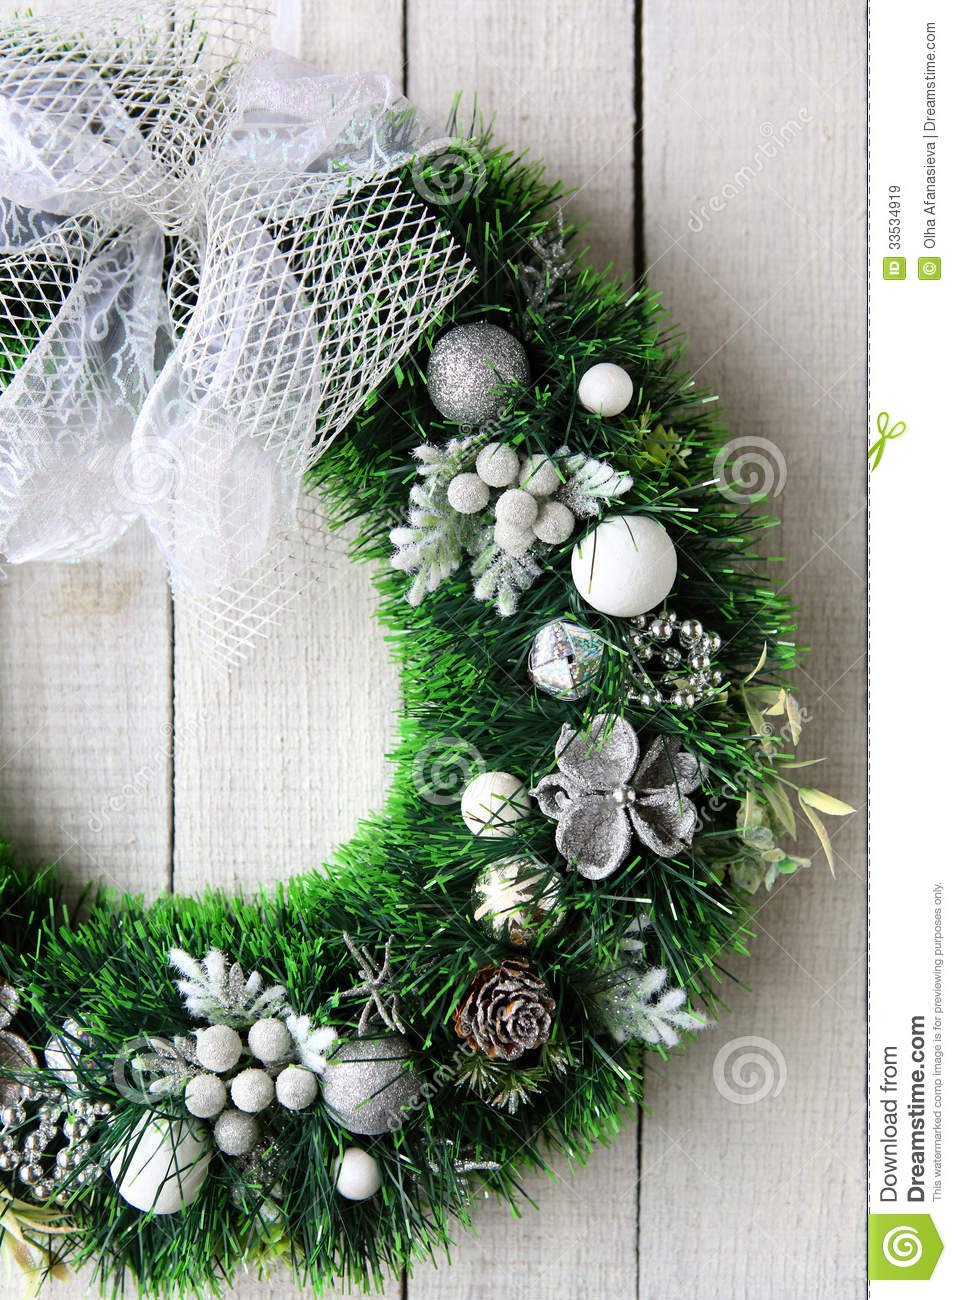 Le Meilleur Christmas Wreath On White Door Stock Image Image Of Ce Mois Ci